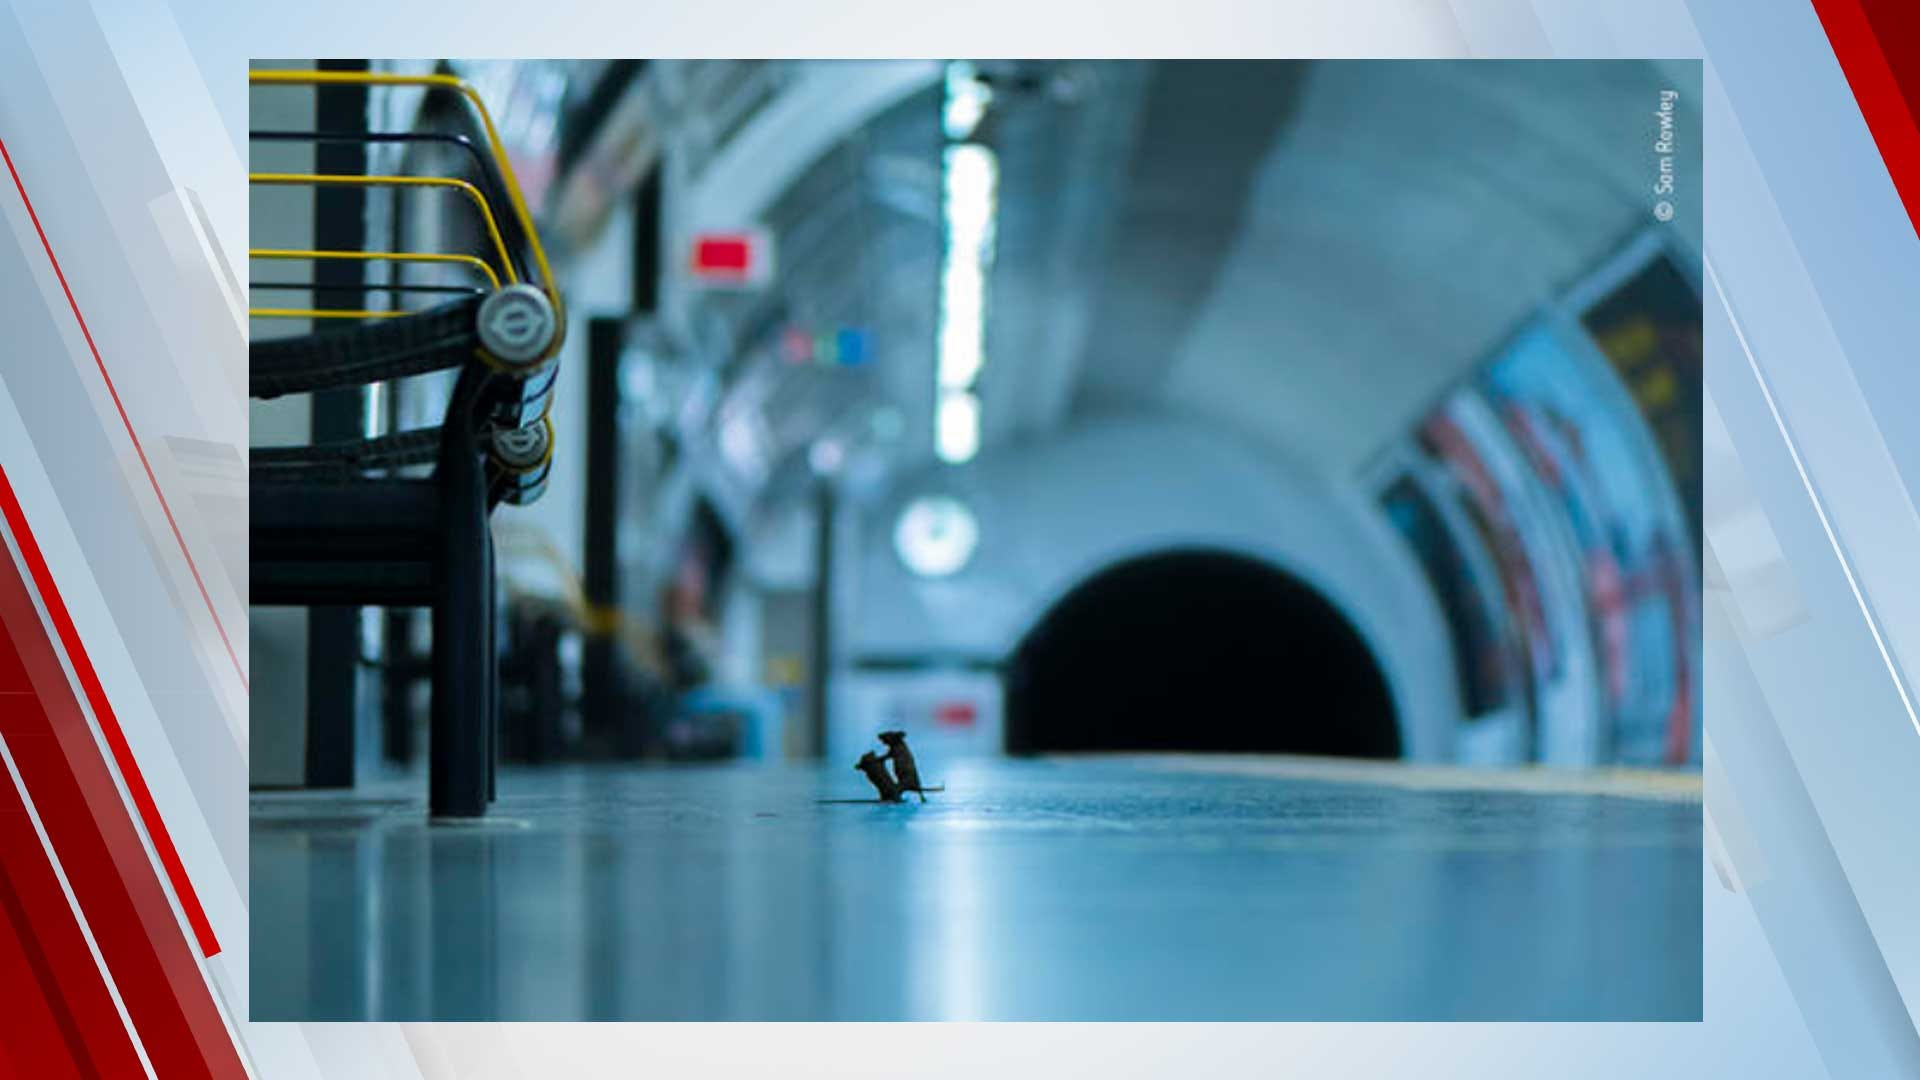 Image Of Mice Fighting Over Crumbs On Subway Platform Wins Top Wildlife Photography Award